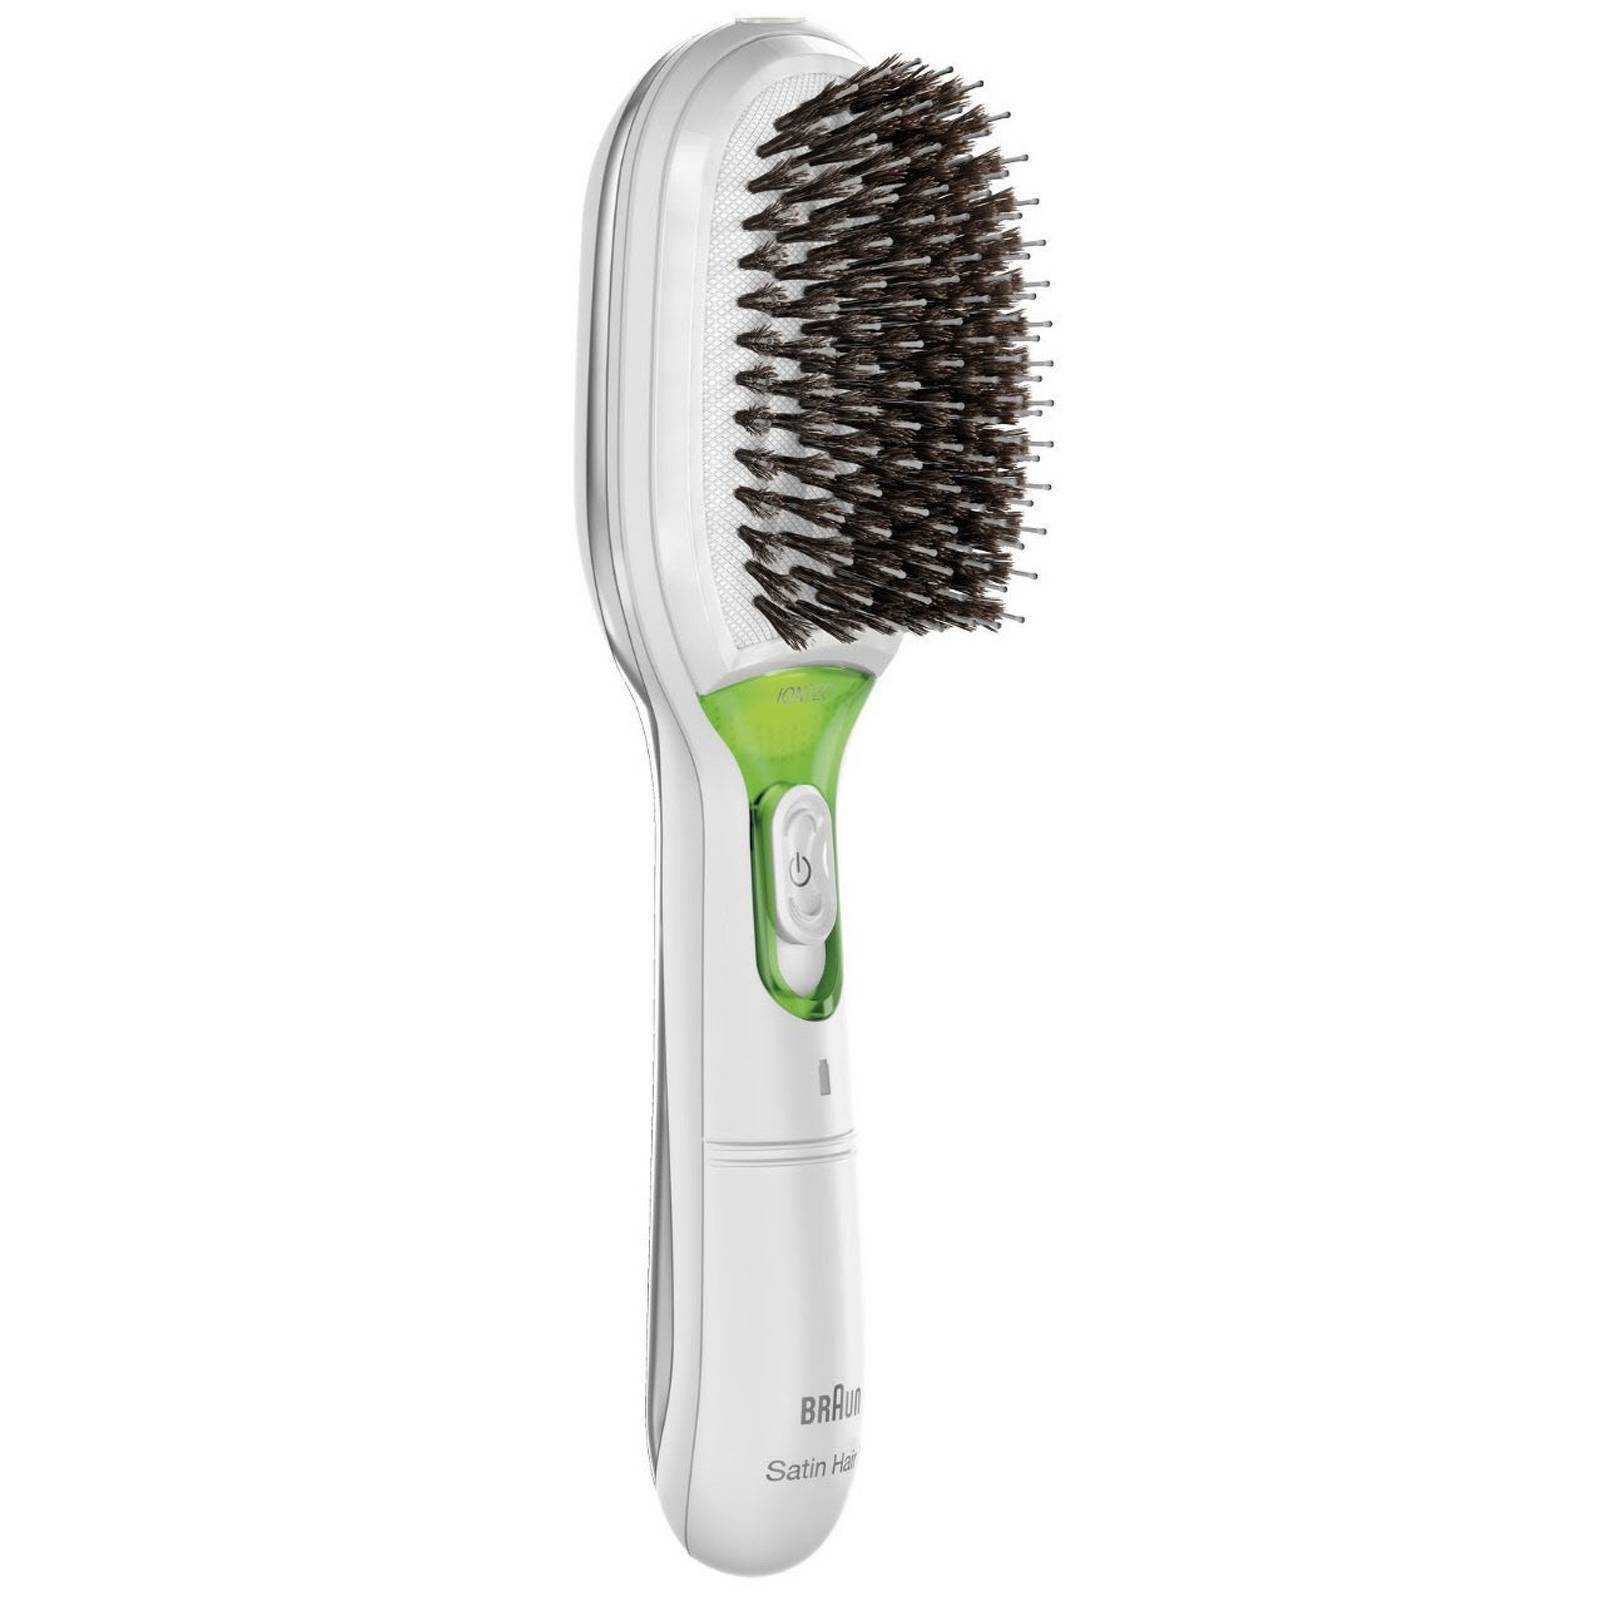 Braun - Satin Hair 7 BR750 Brush with IONTEC Technology and Natural Bristle for Women